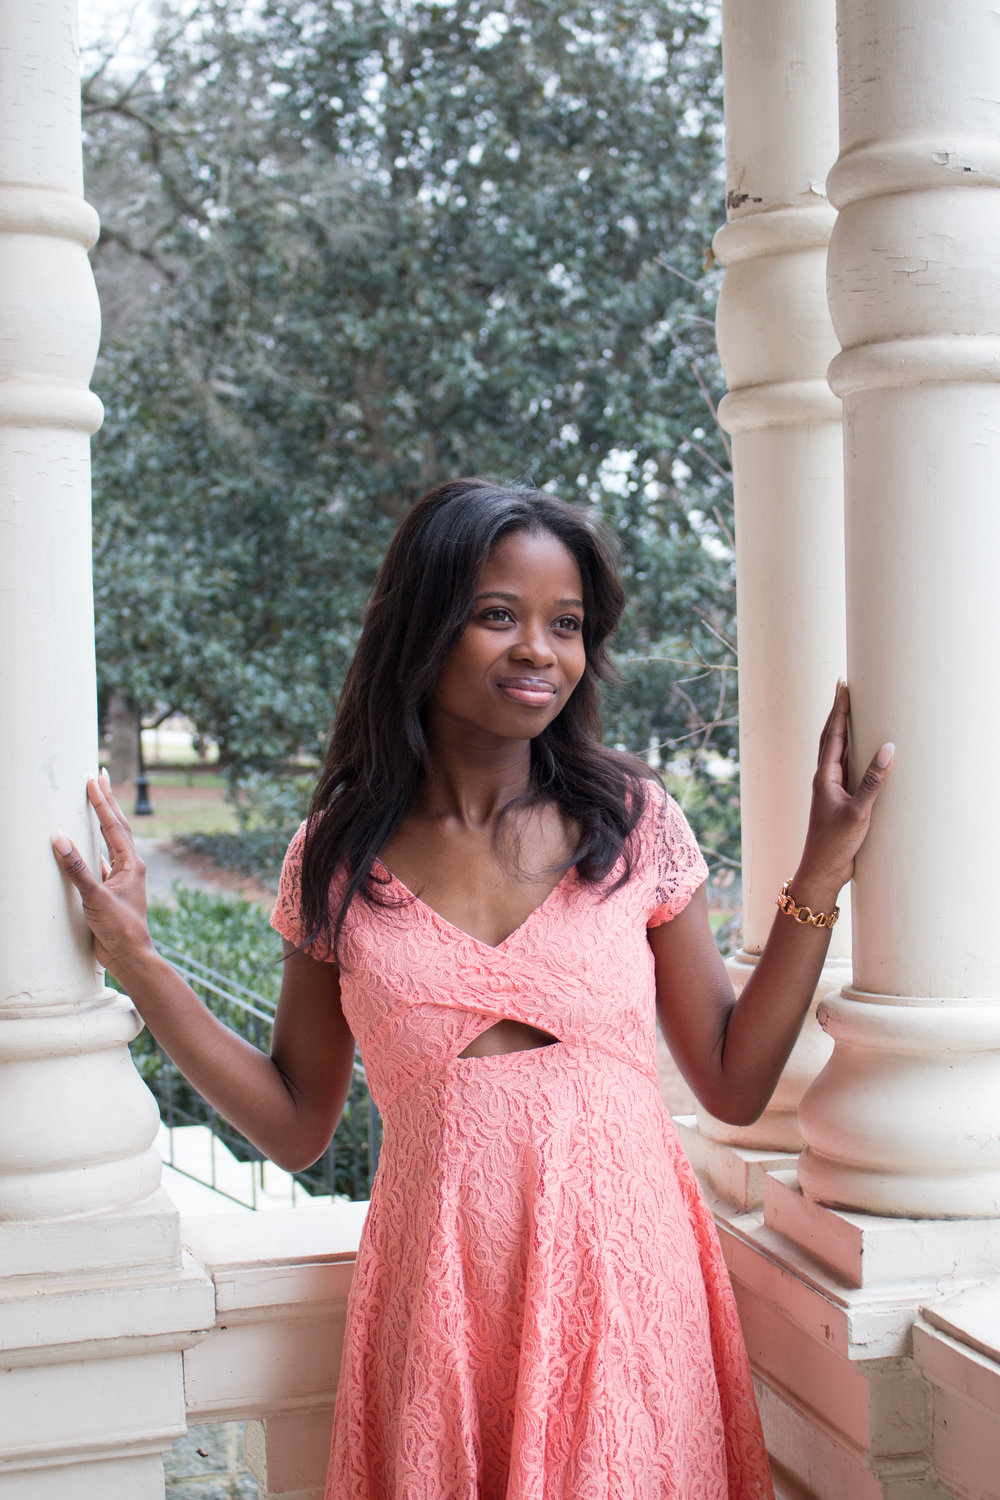 agnes scott college senior portrait-6102.jpg